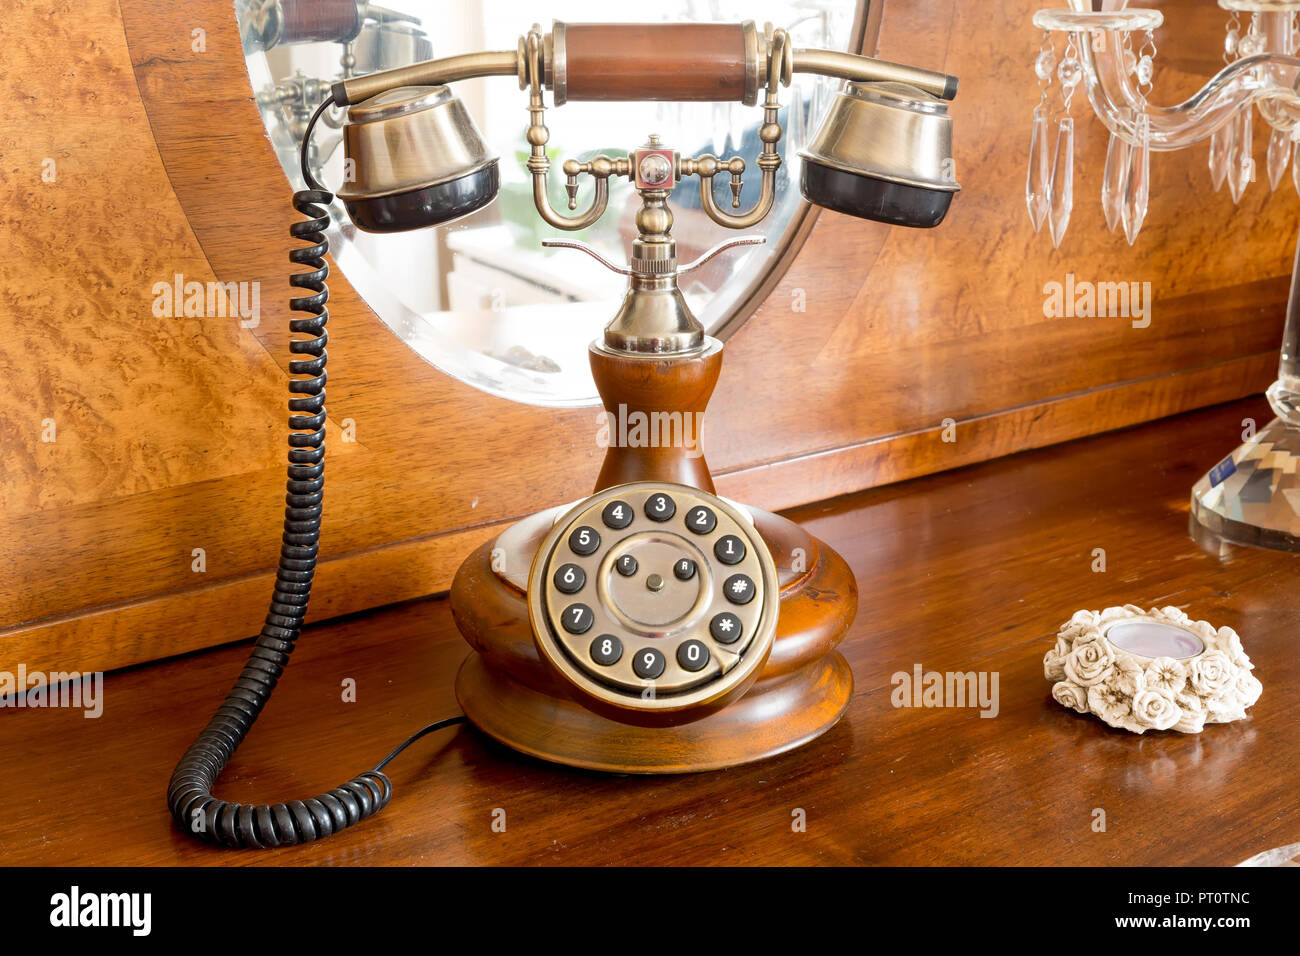 Vintage Telephone Decoration On A Wooden Table Stock Photo